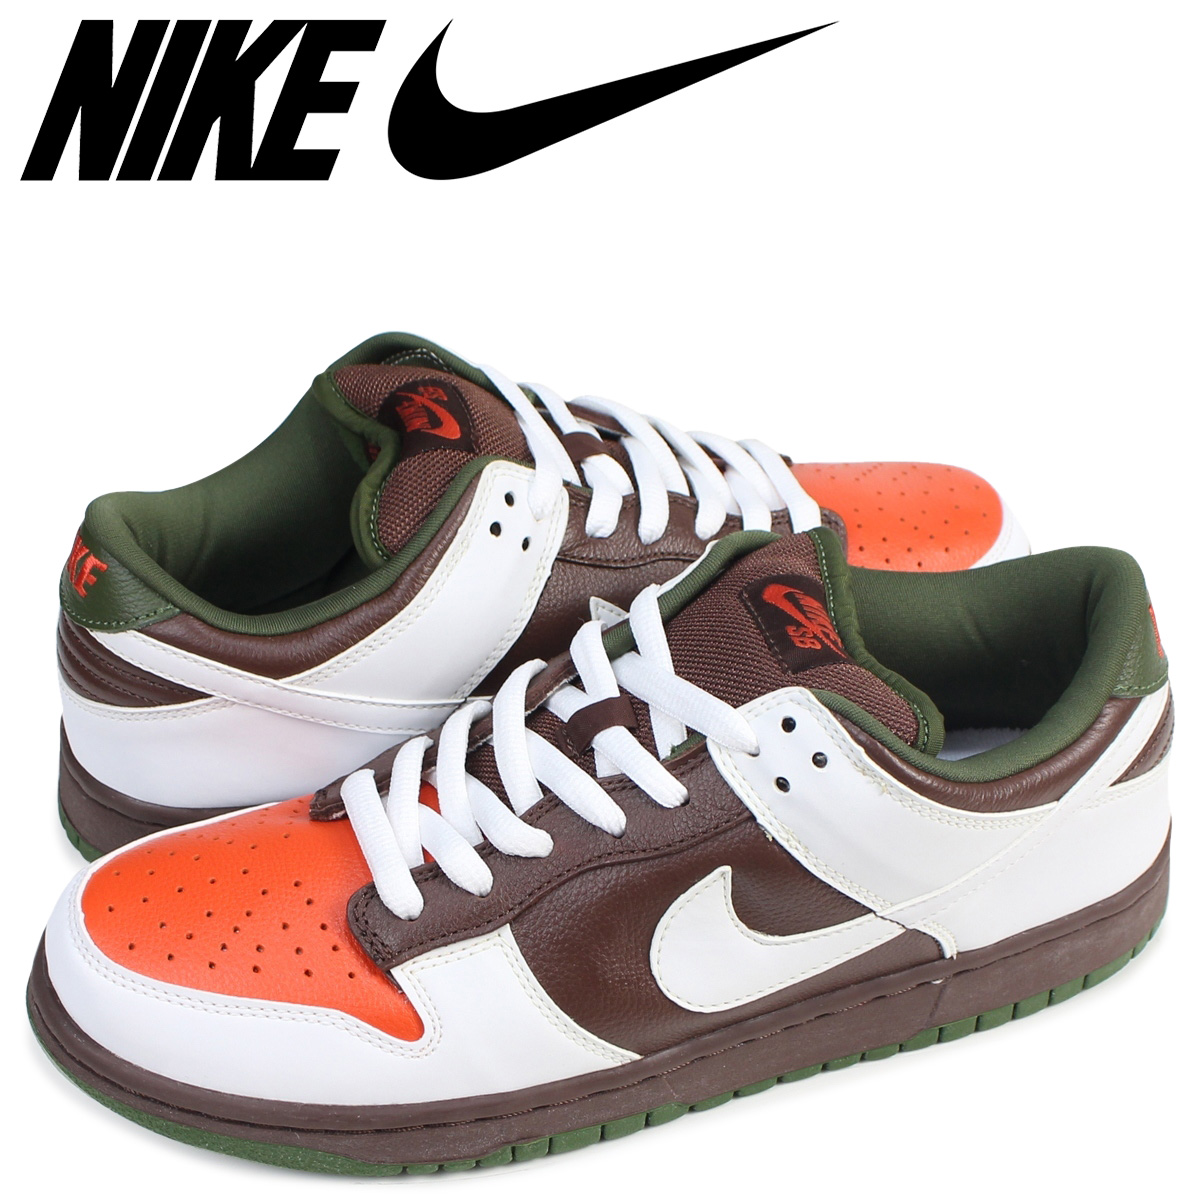 new style 22760 d9181 NIKE Nike SB dunk low sneakers DUNK LOW PRO OOMPA LOOMPA 304,292-228 men's  shoes brown